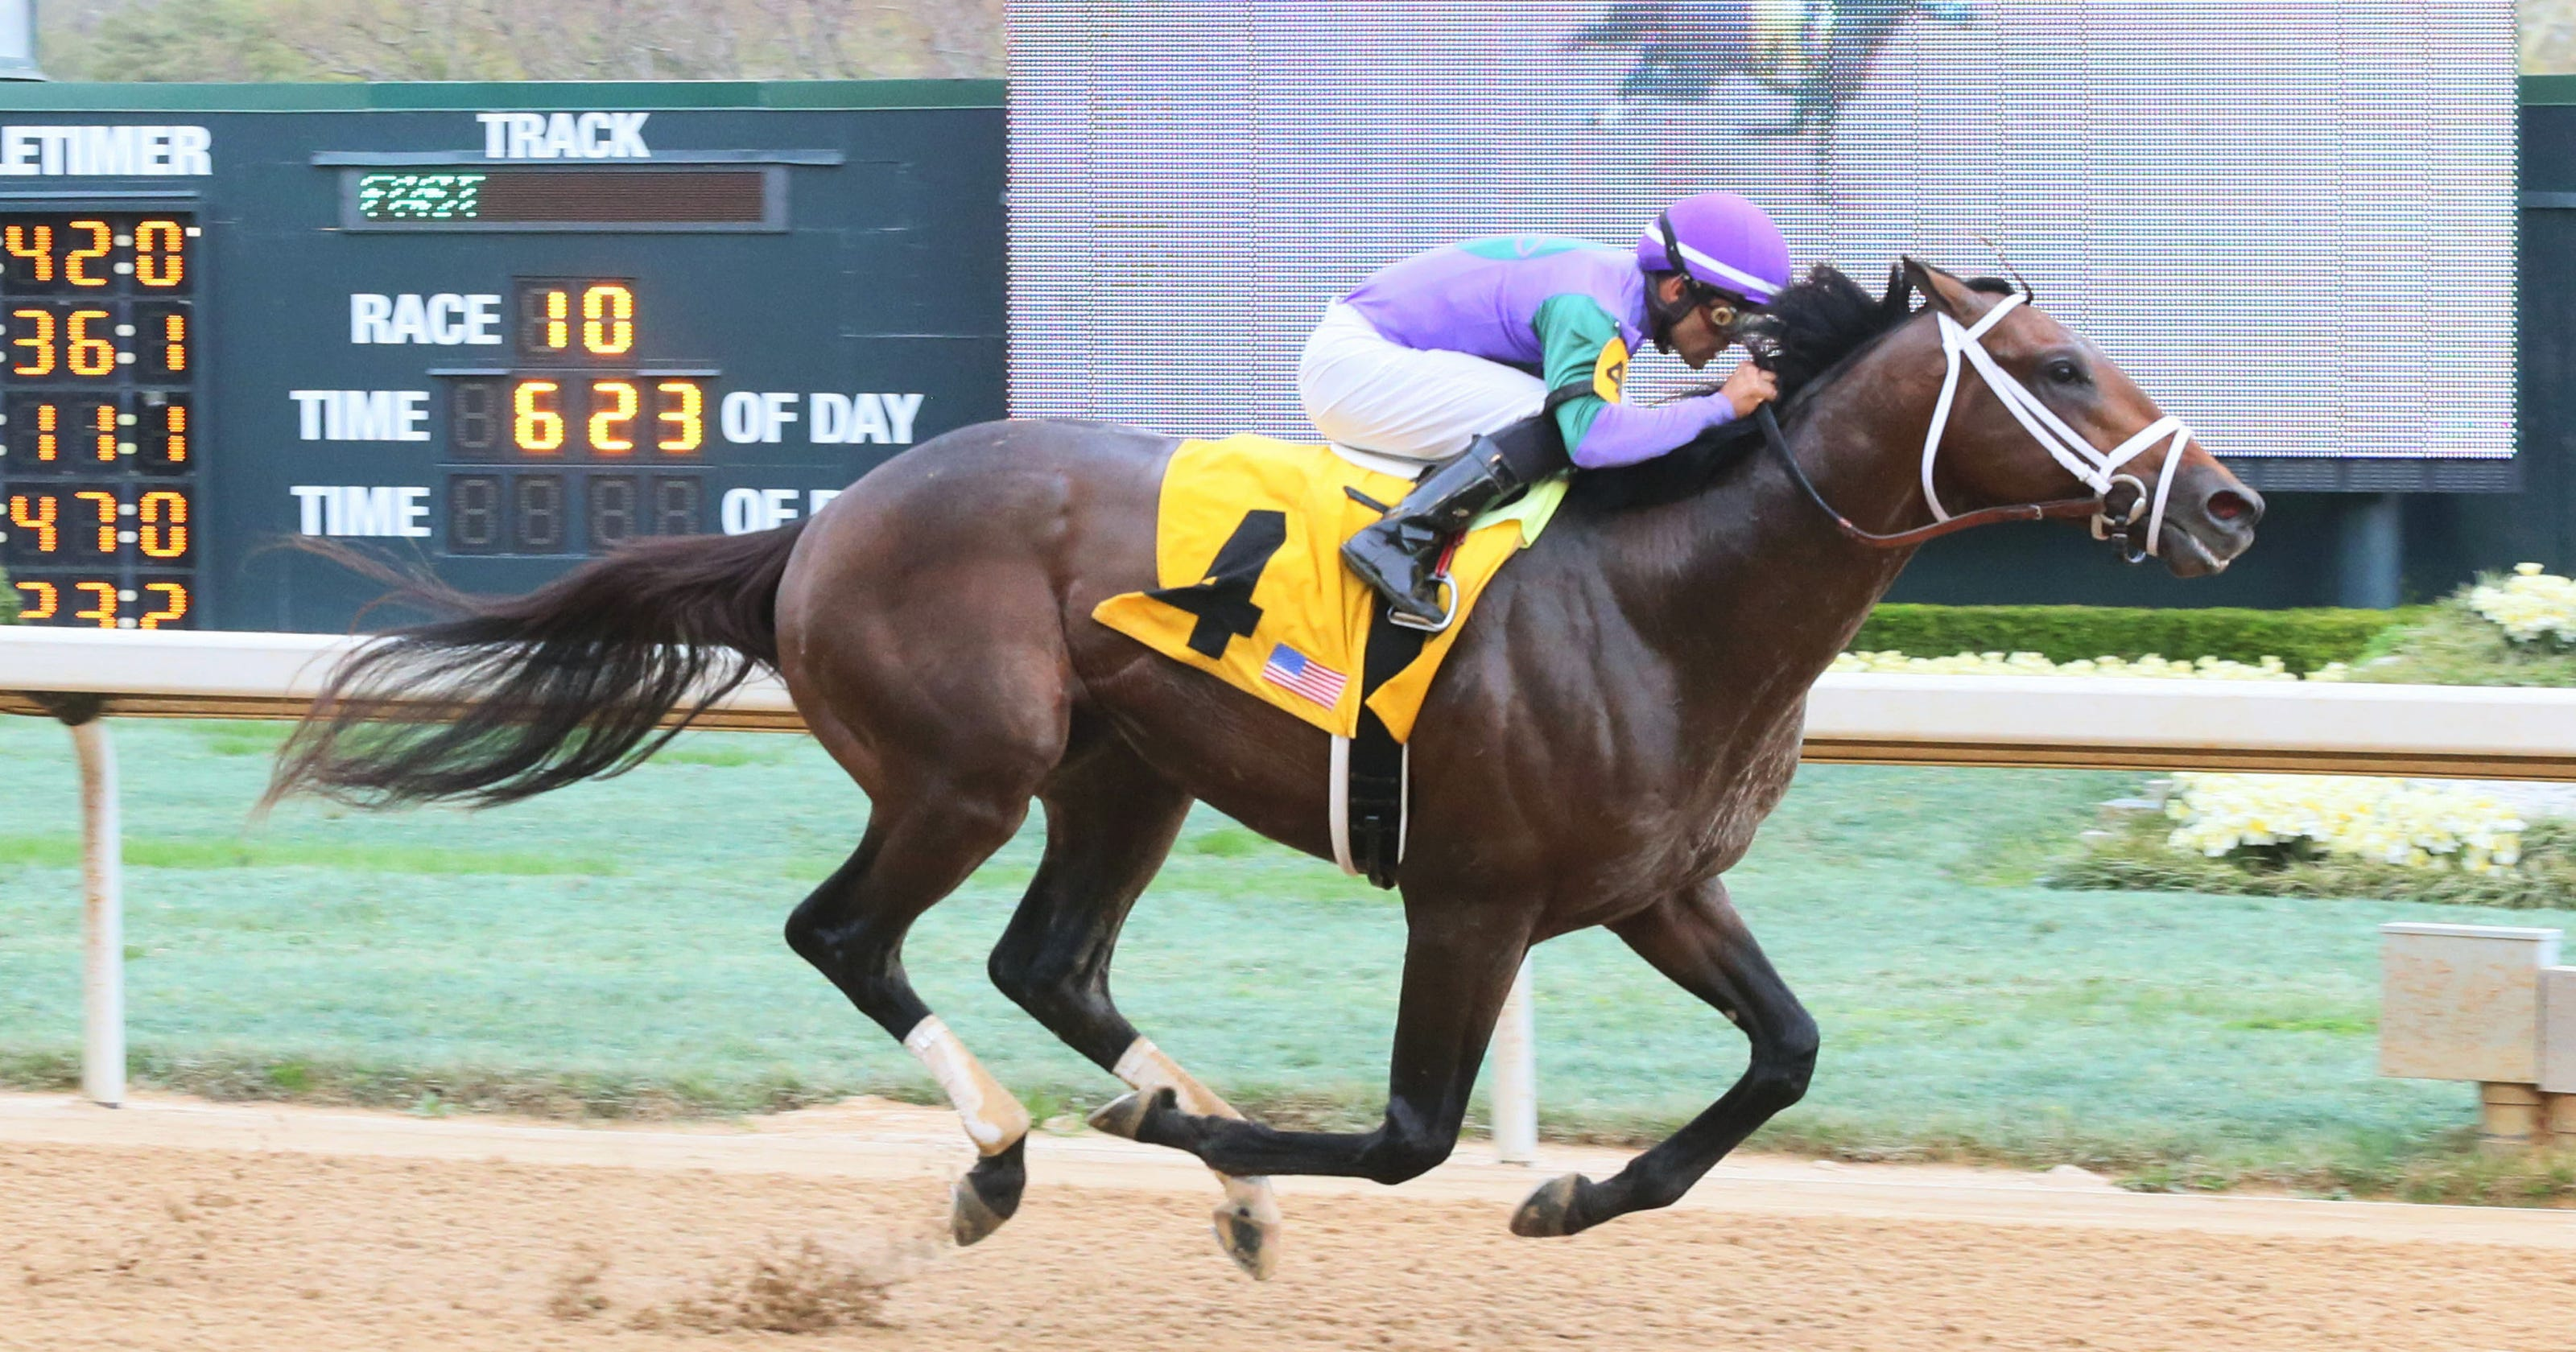 Robert And Lawana Lows Thoroughbred Magnum Moon Will Likely Be Favored To Win The Arkansas Derby On Saturday